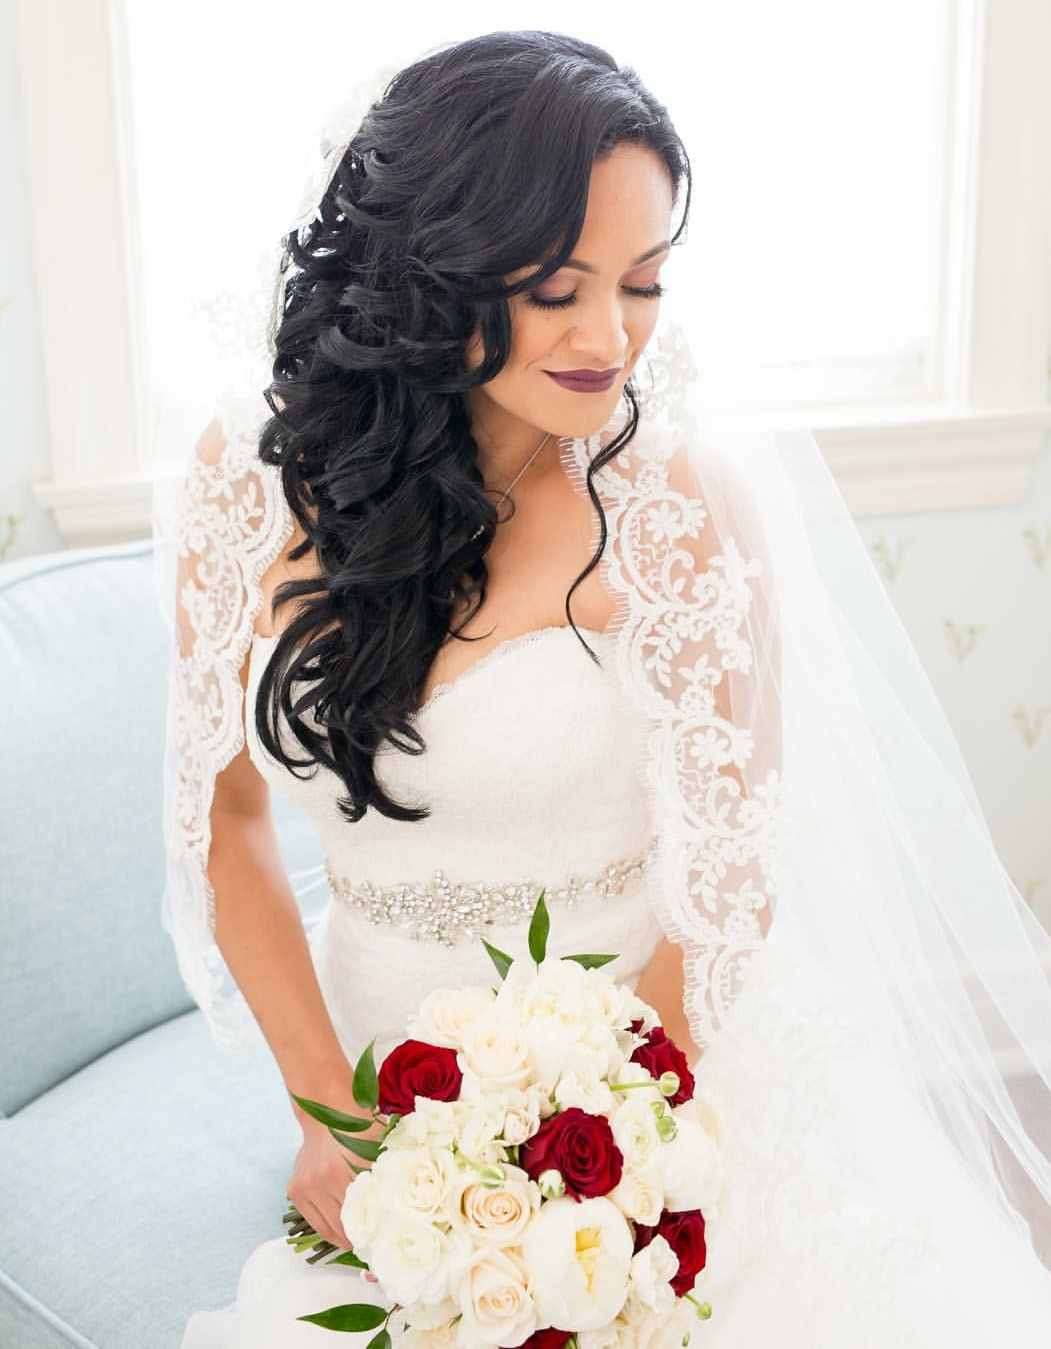 Best on location wedding Hairstylist. Bridal Hair in San Diego, Temecula, Fallbrook and Orange County. Wedding Hairstyle and bridal hairstyles. The Posh Parlour is a full-service hair salon offering on location bridal hair styling and hair extensions. Stephanie is a top wedding hairstylist southern California. Wedding hair photos. Pictures of perfect bridal hairstyles. Couture bridal hair. Bridal updos and curled wedding hair. Bridesmaids Hairstyles. Traveling and destination wedding hairstylist. specializing in Boho, Glamorous, tousled, soft curls, updos, braided, sexy, classic, messy, voluminous, beautiful, stunning, pretty, long hair, braids, gorgeous hairstyles for brides and bridal party. Styling for rustic, glam, luxe, shabby chic, vintage, and bohemian events.